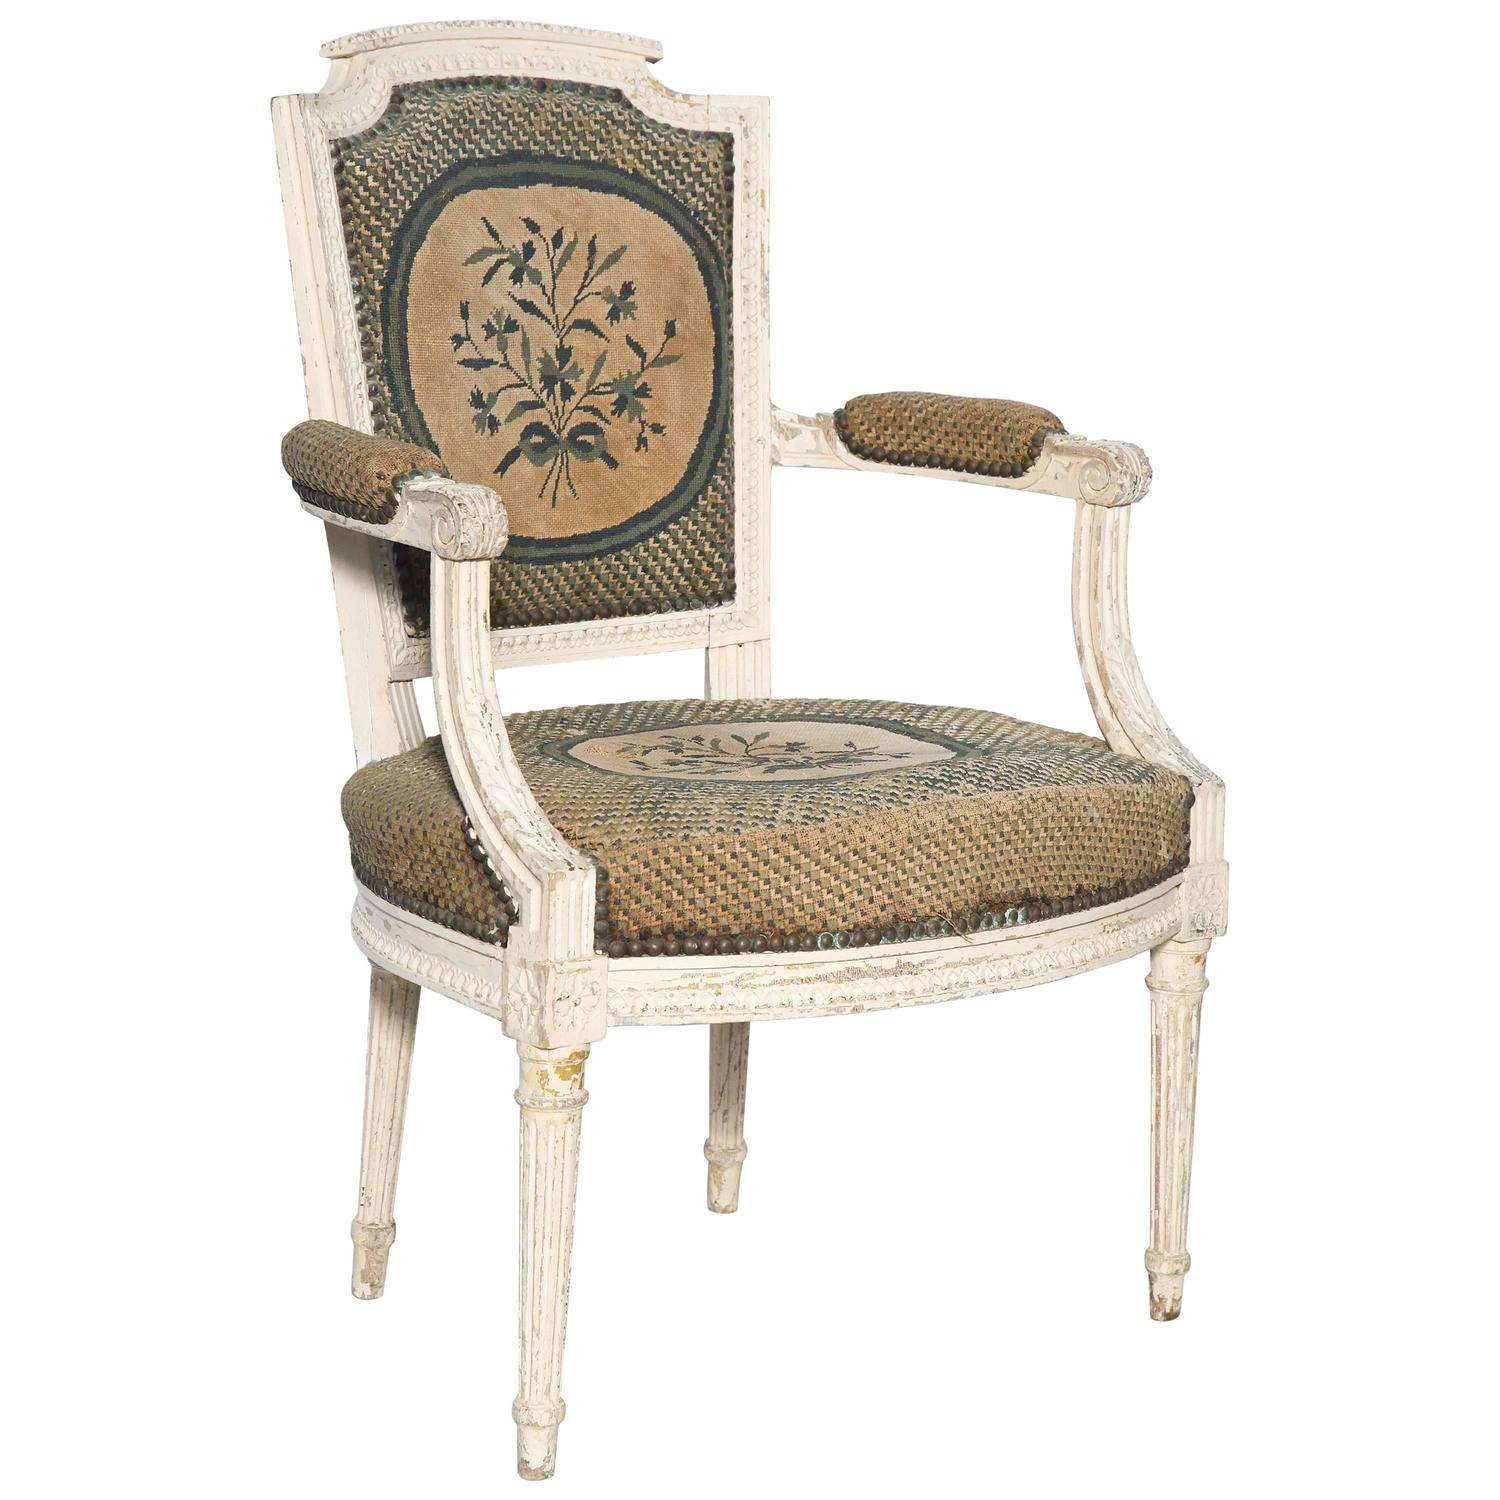 late 19th century french louis xvi style painted fauteuil for sale at 1stdibs. Black Bedroom Furniture Sets. Home Design Ideas